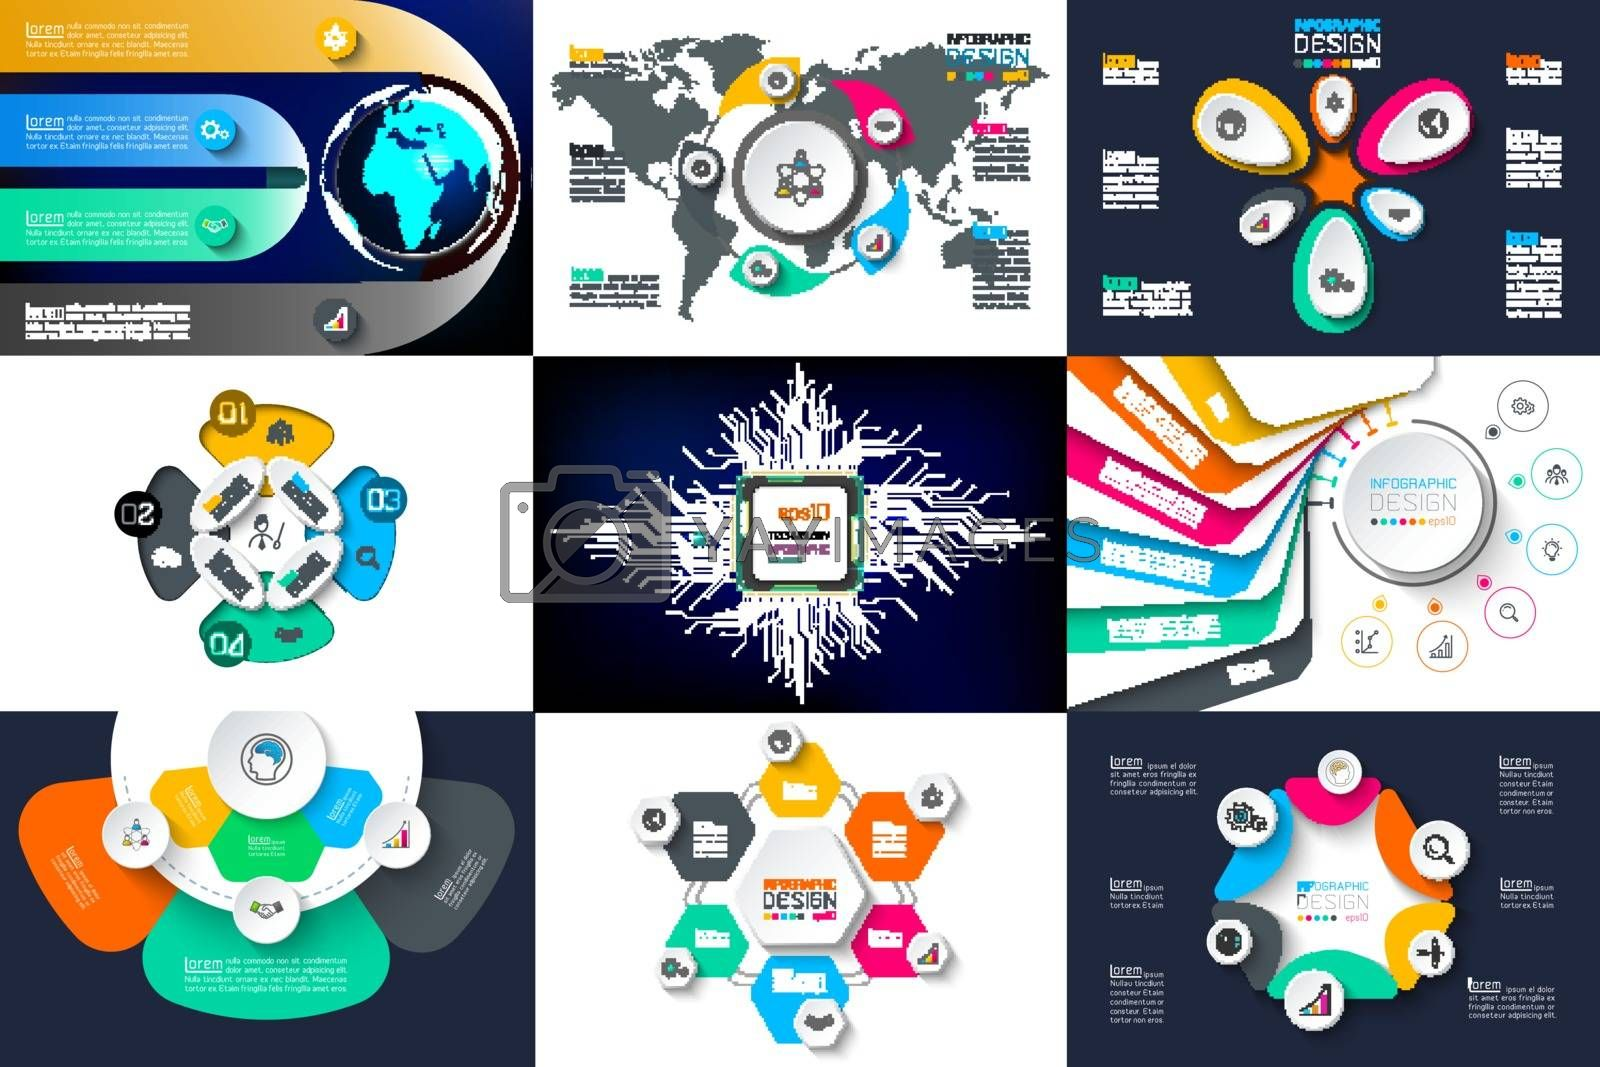 Infographic design vector sets used for workflow layout.